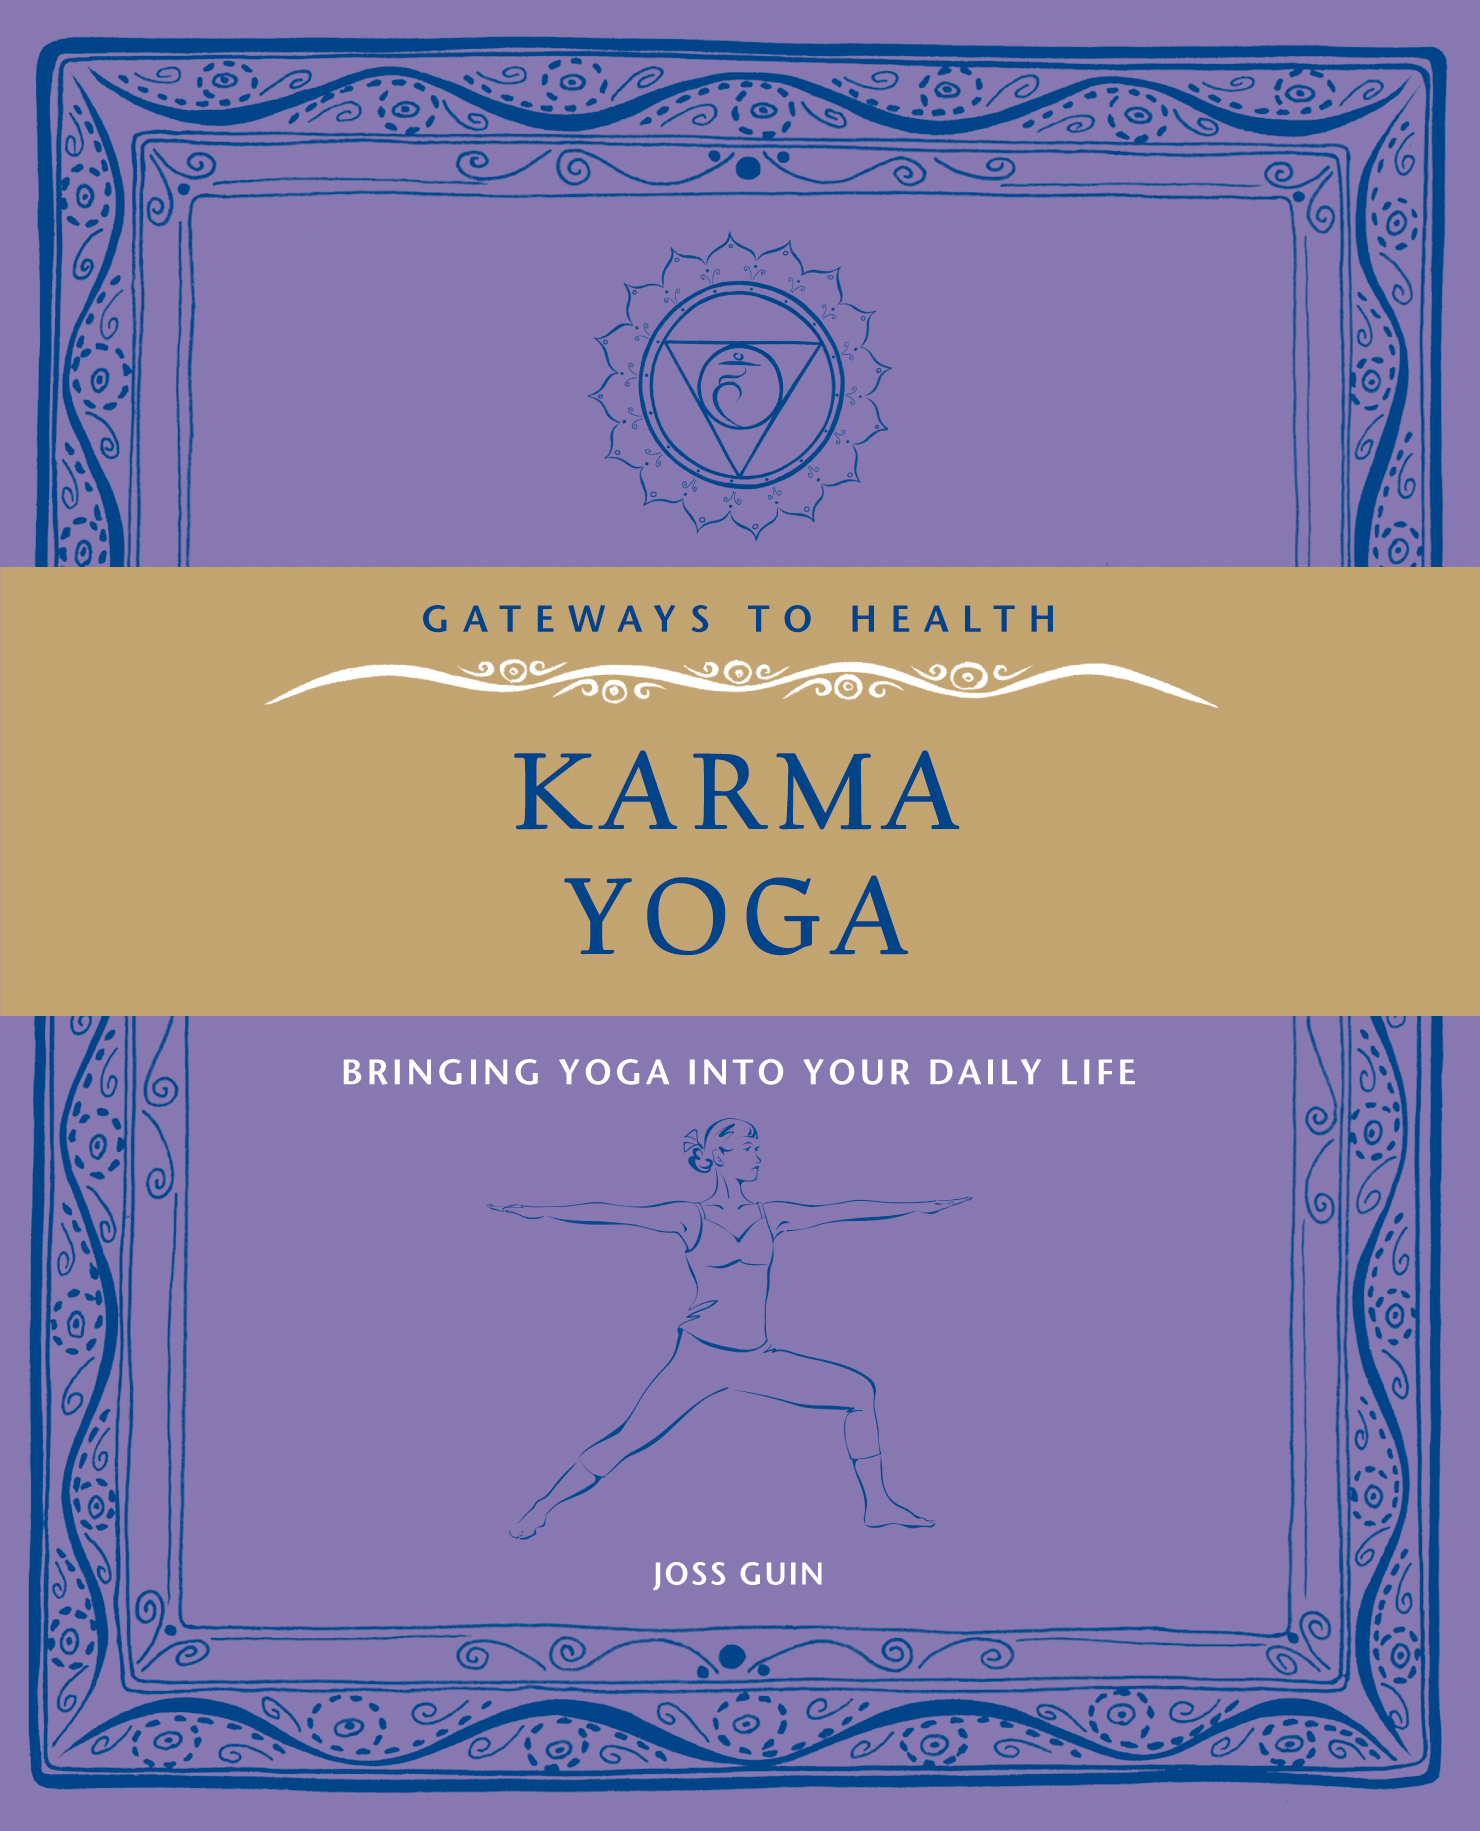 Karma Yoga - Bringing Yoga into Your Daily Life